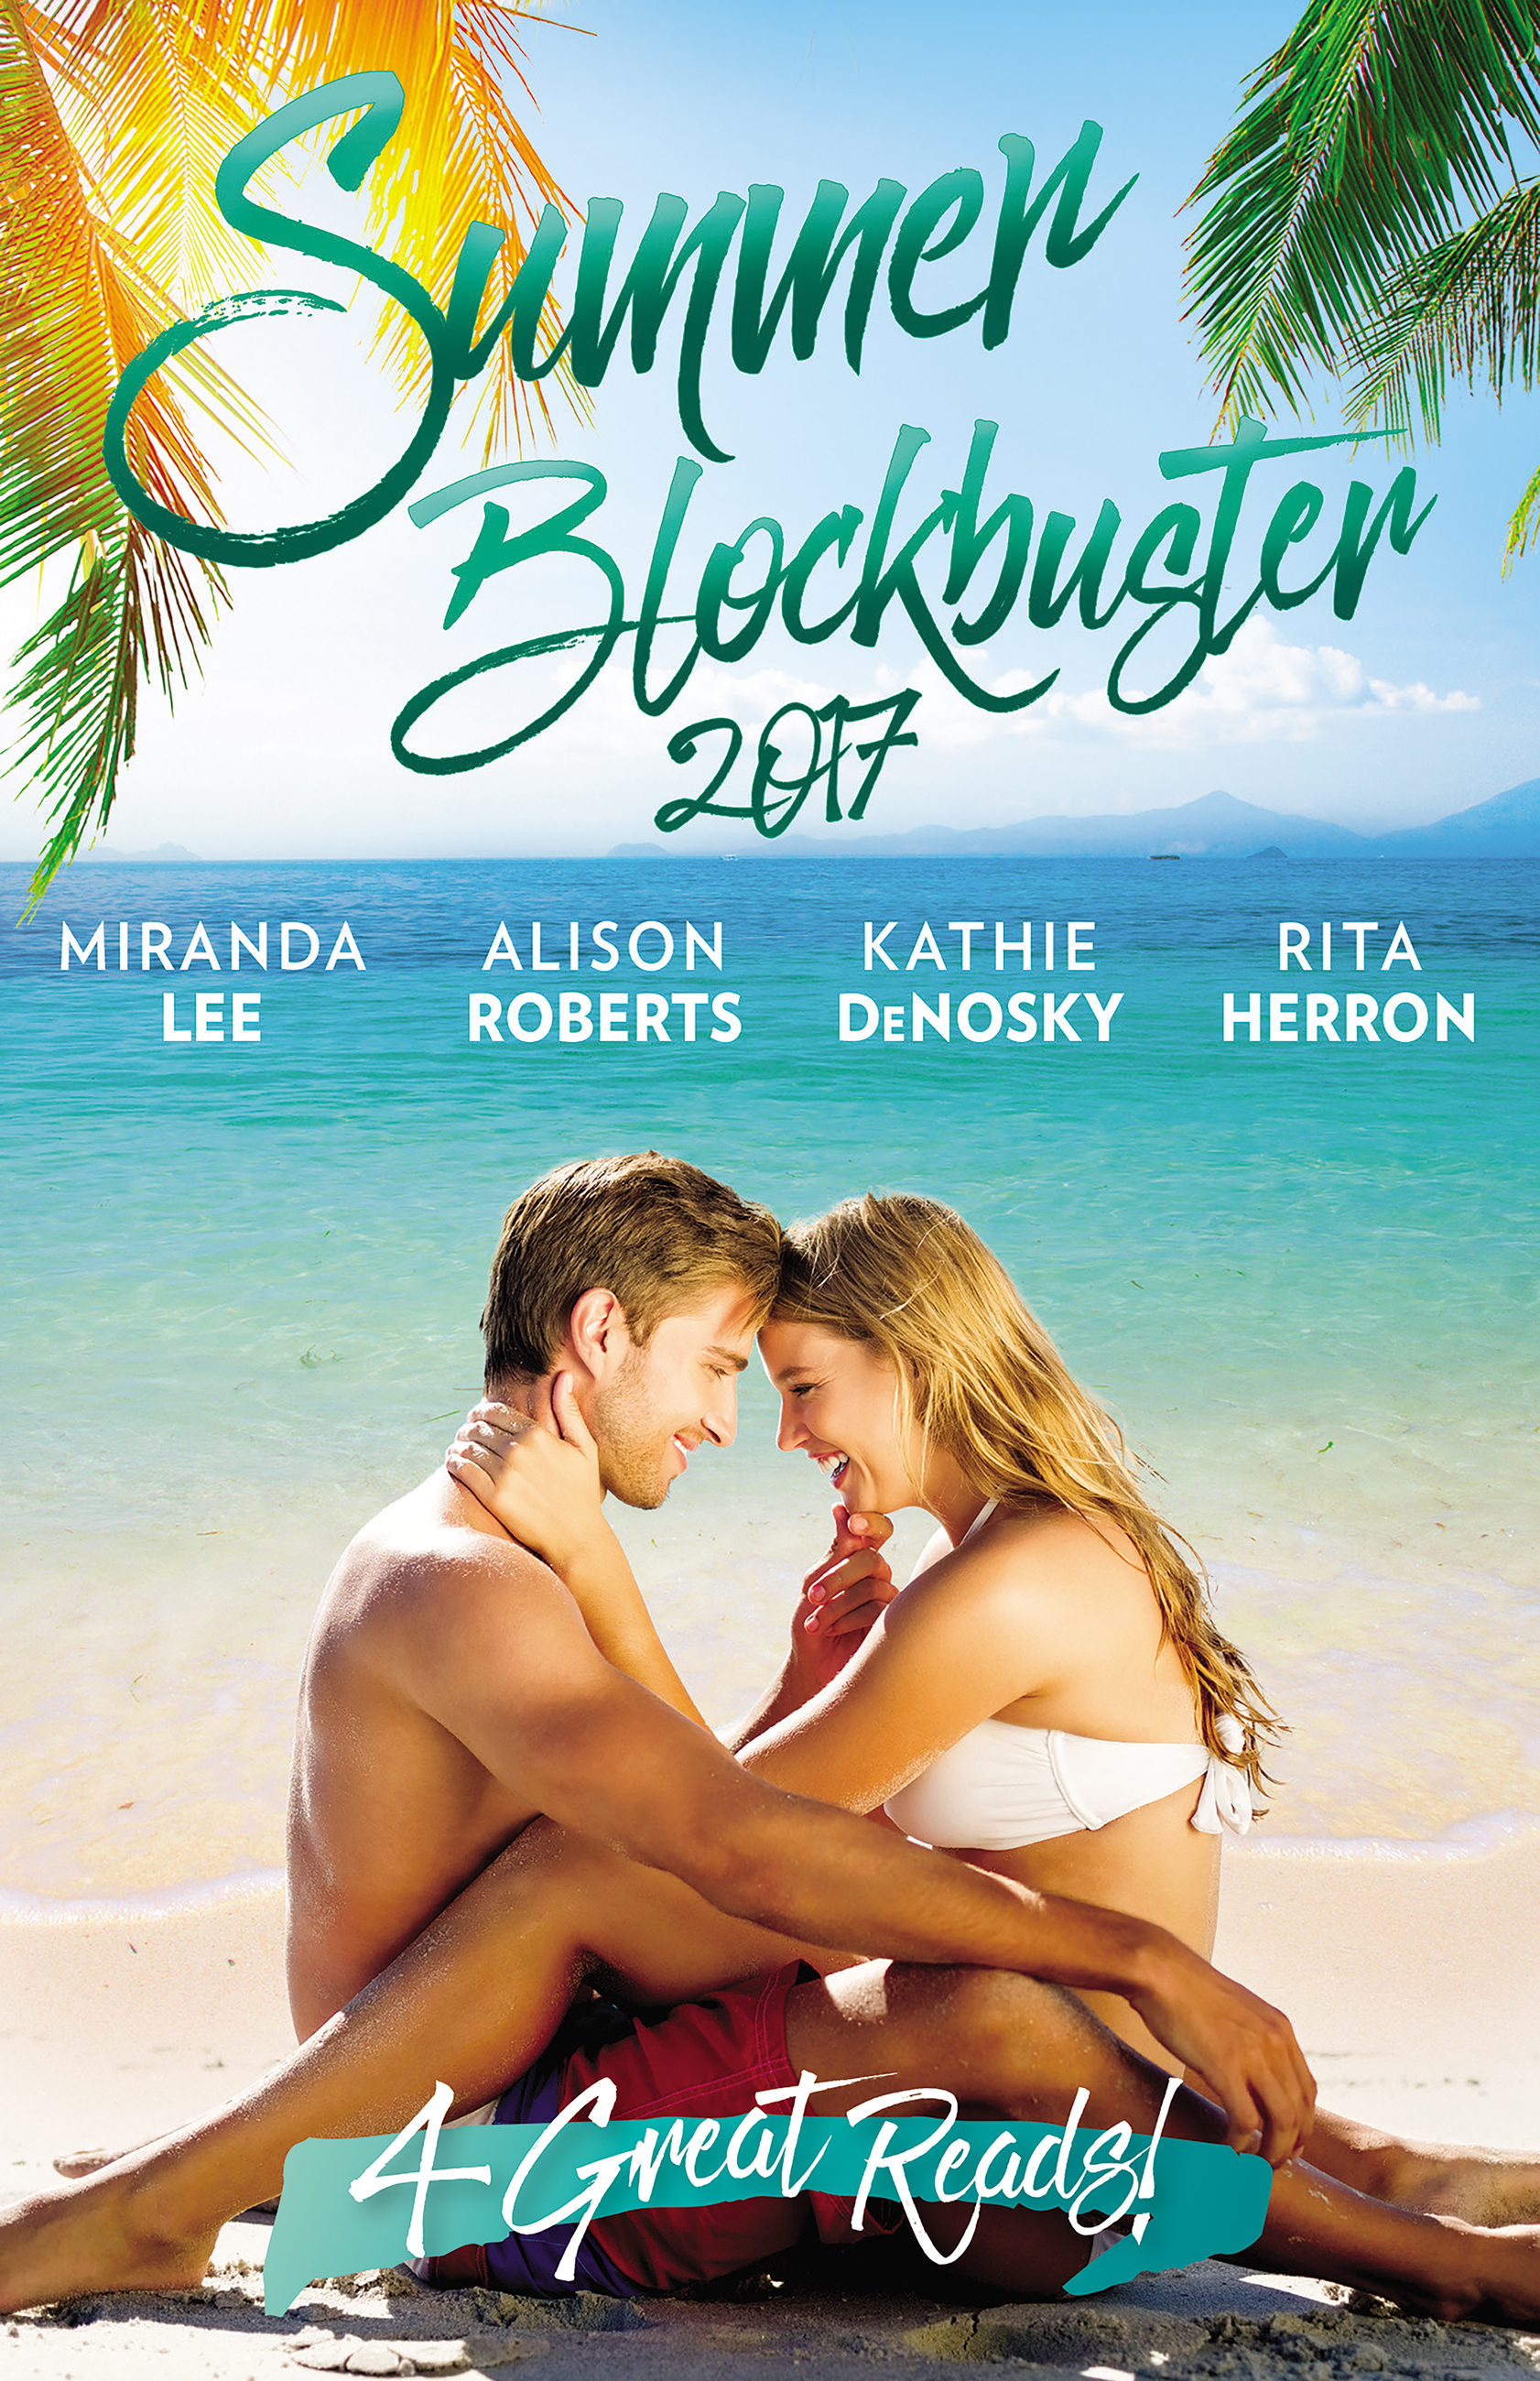 Summer Blockbuster 2017/A Scandalous Marriage/One Night To Wed/His Marriage To Remember/Up In Flames: Nighthawk Island Book 9